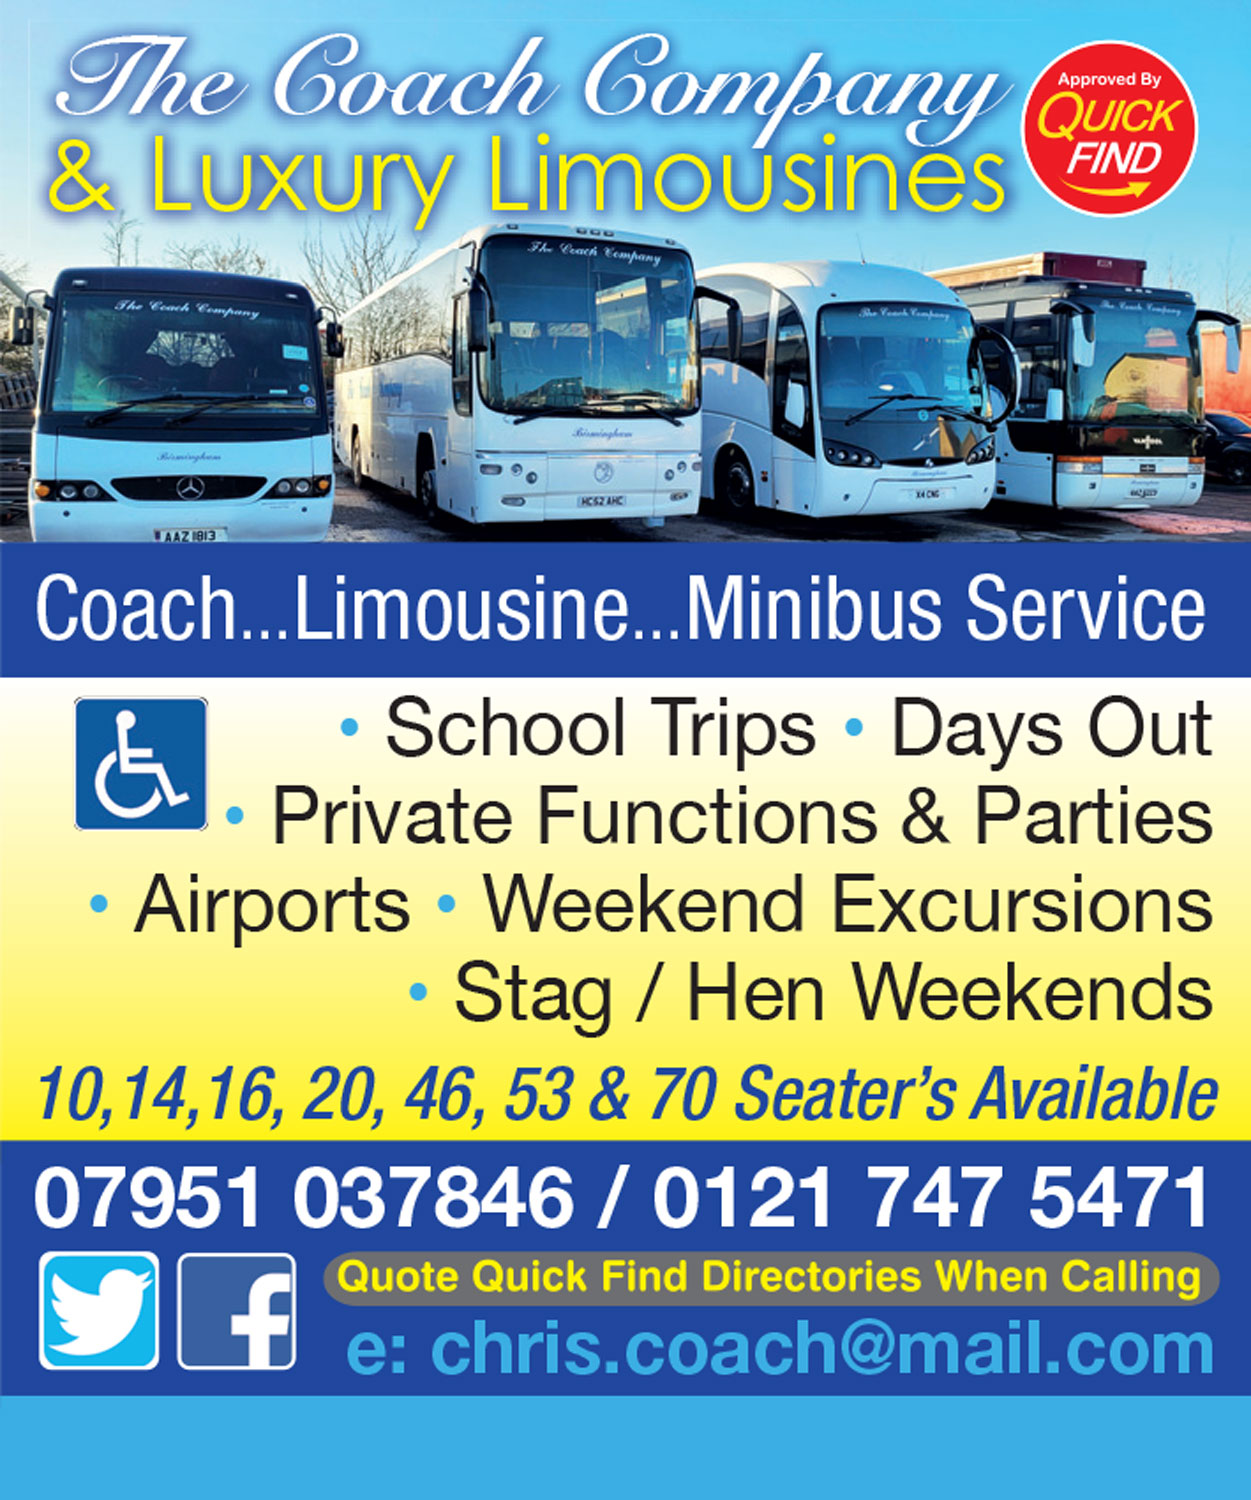 The Coach Company & Luxury Limousines